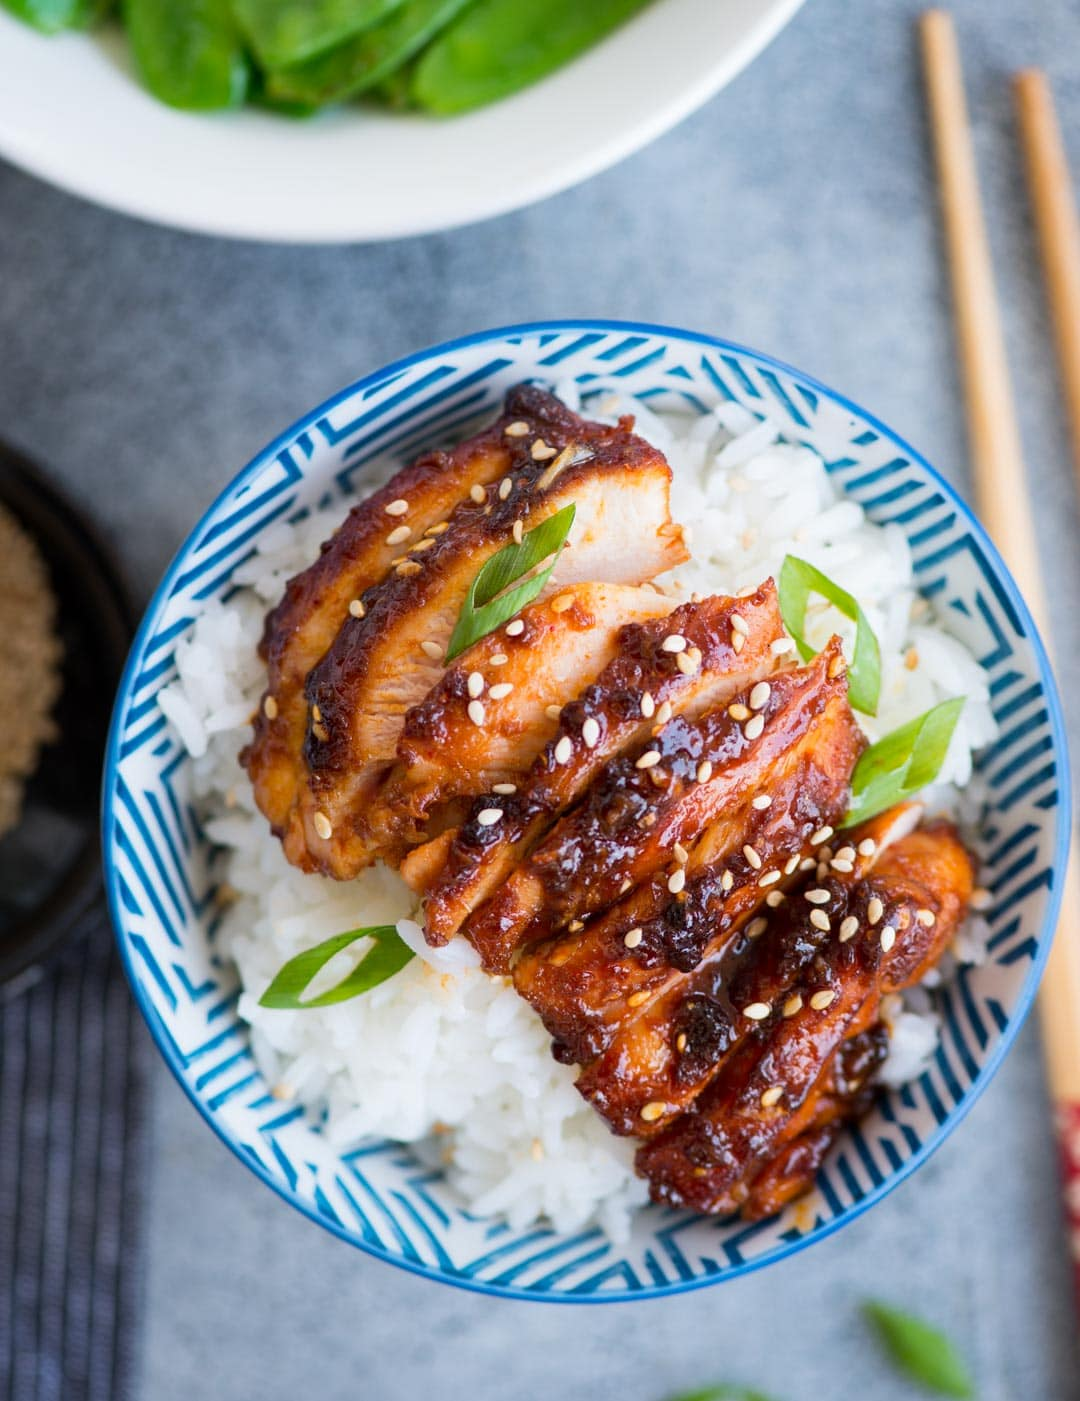 Sticky Korean Chicken made with Gochujang, soy sauce based marinade is bold in flavours and really easy to make. Chicken thighs coated in a sweet and spicy sauce and cooked until juicy.